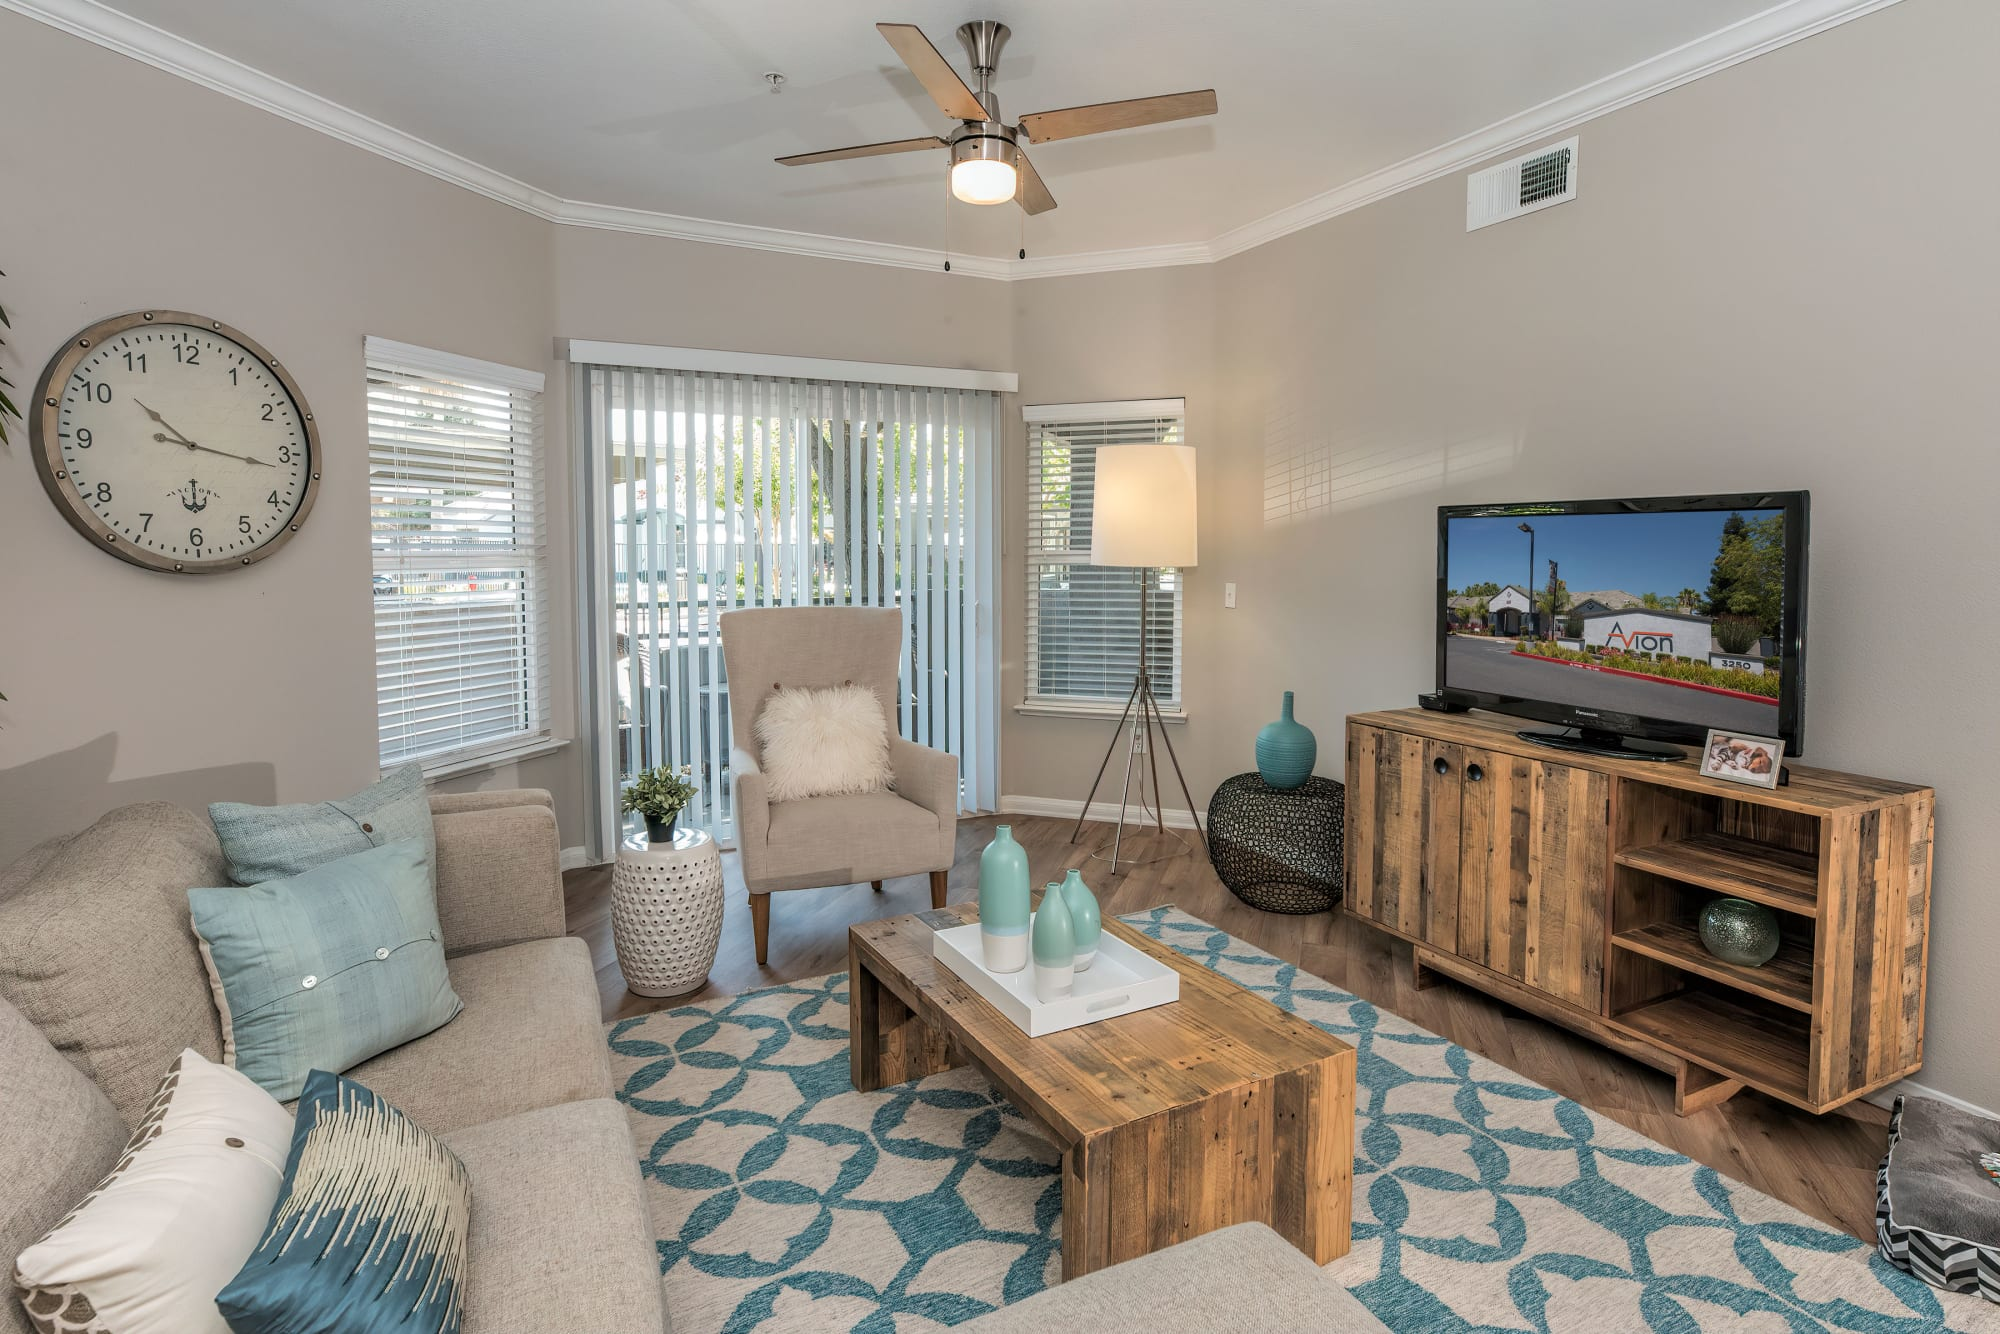 A spacious apartment living room at Avion Apartments in Rancho Cordova, California